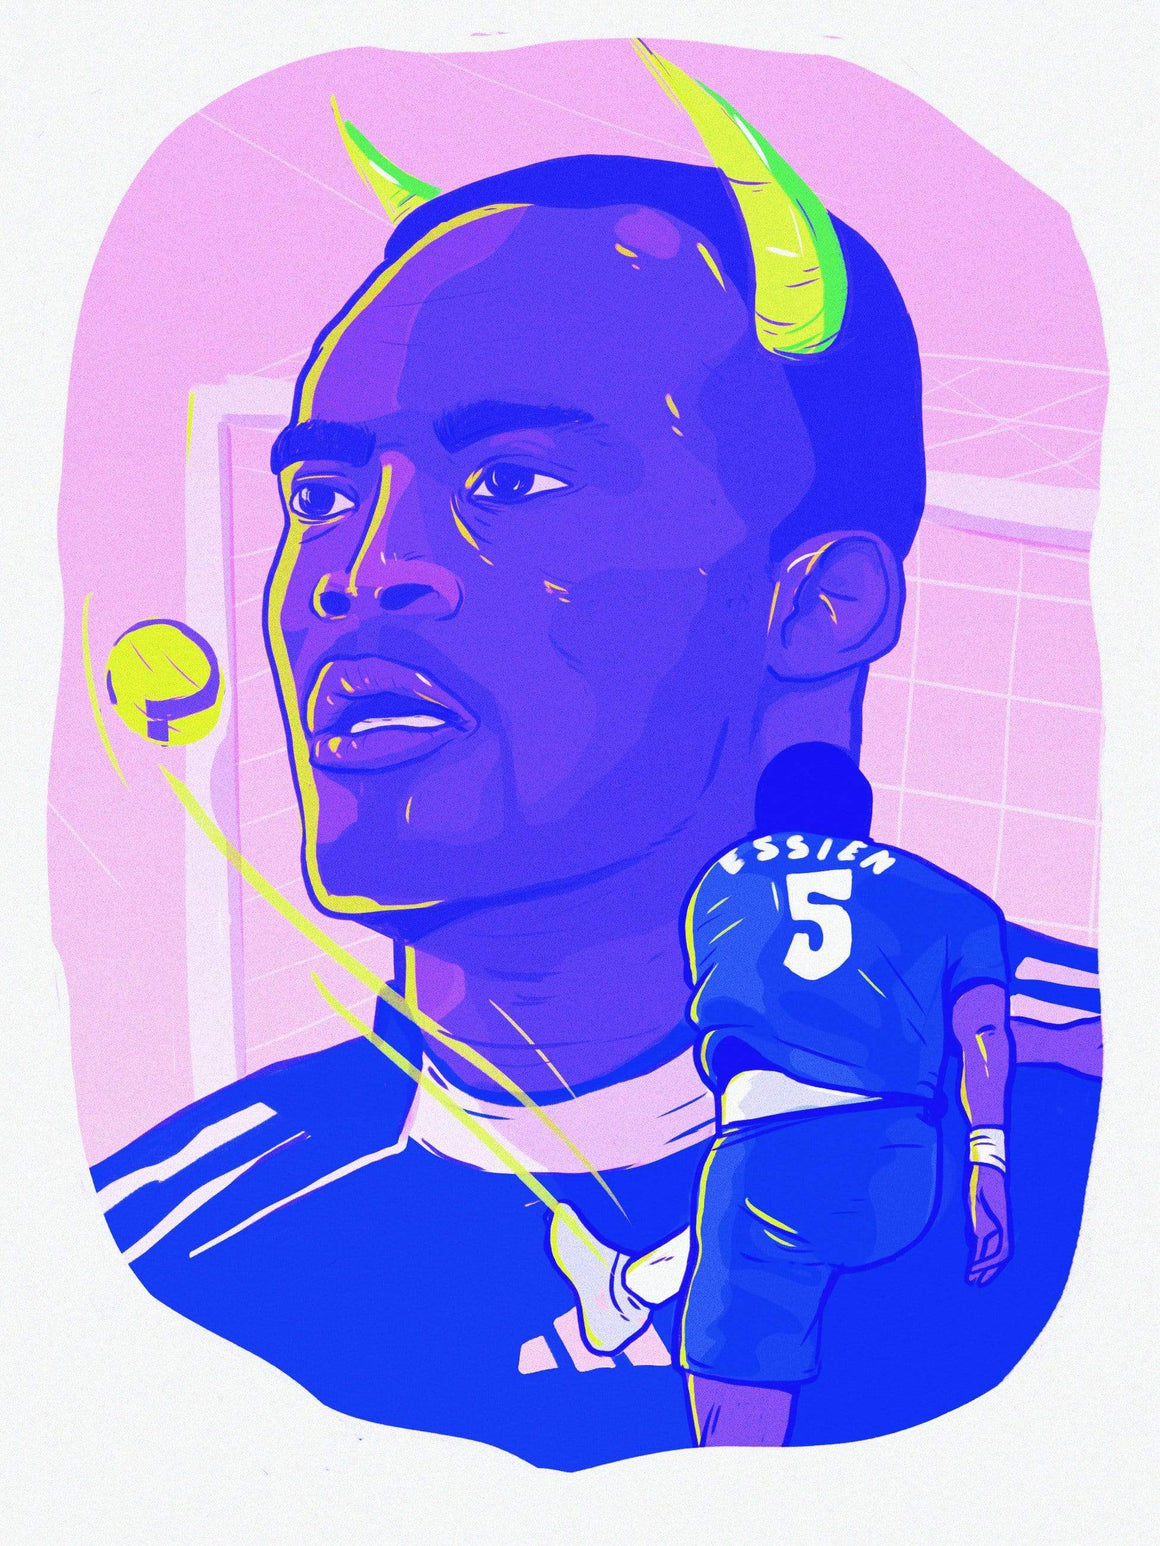 Your First Football Shirt Essien x Chelsea A3 print